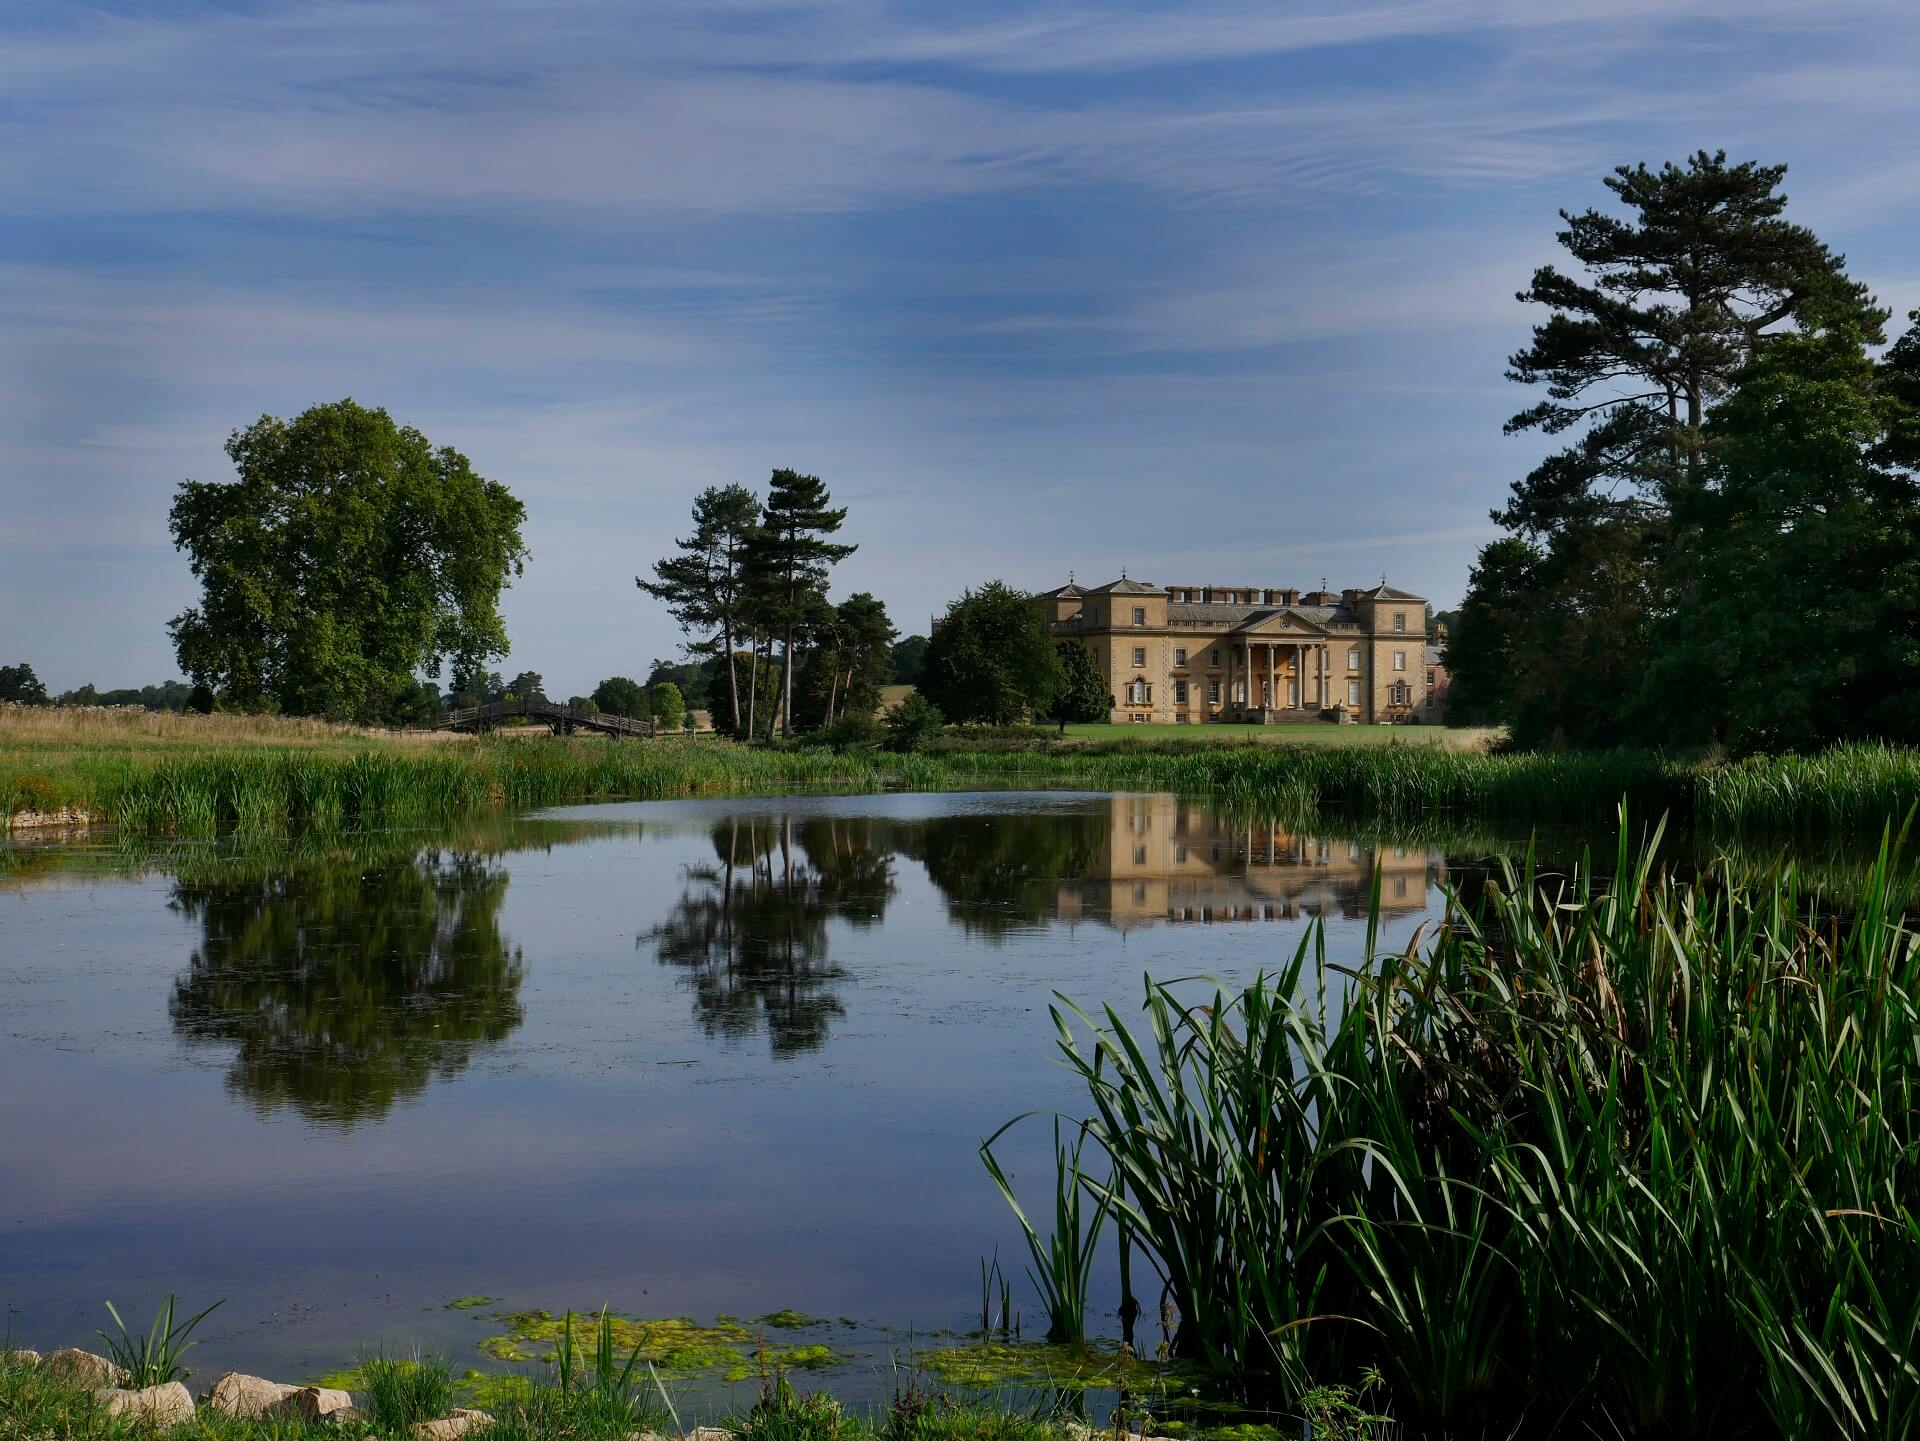 Croome Court 1 Credit Tracey Blackwell